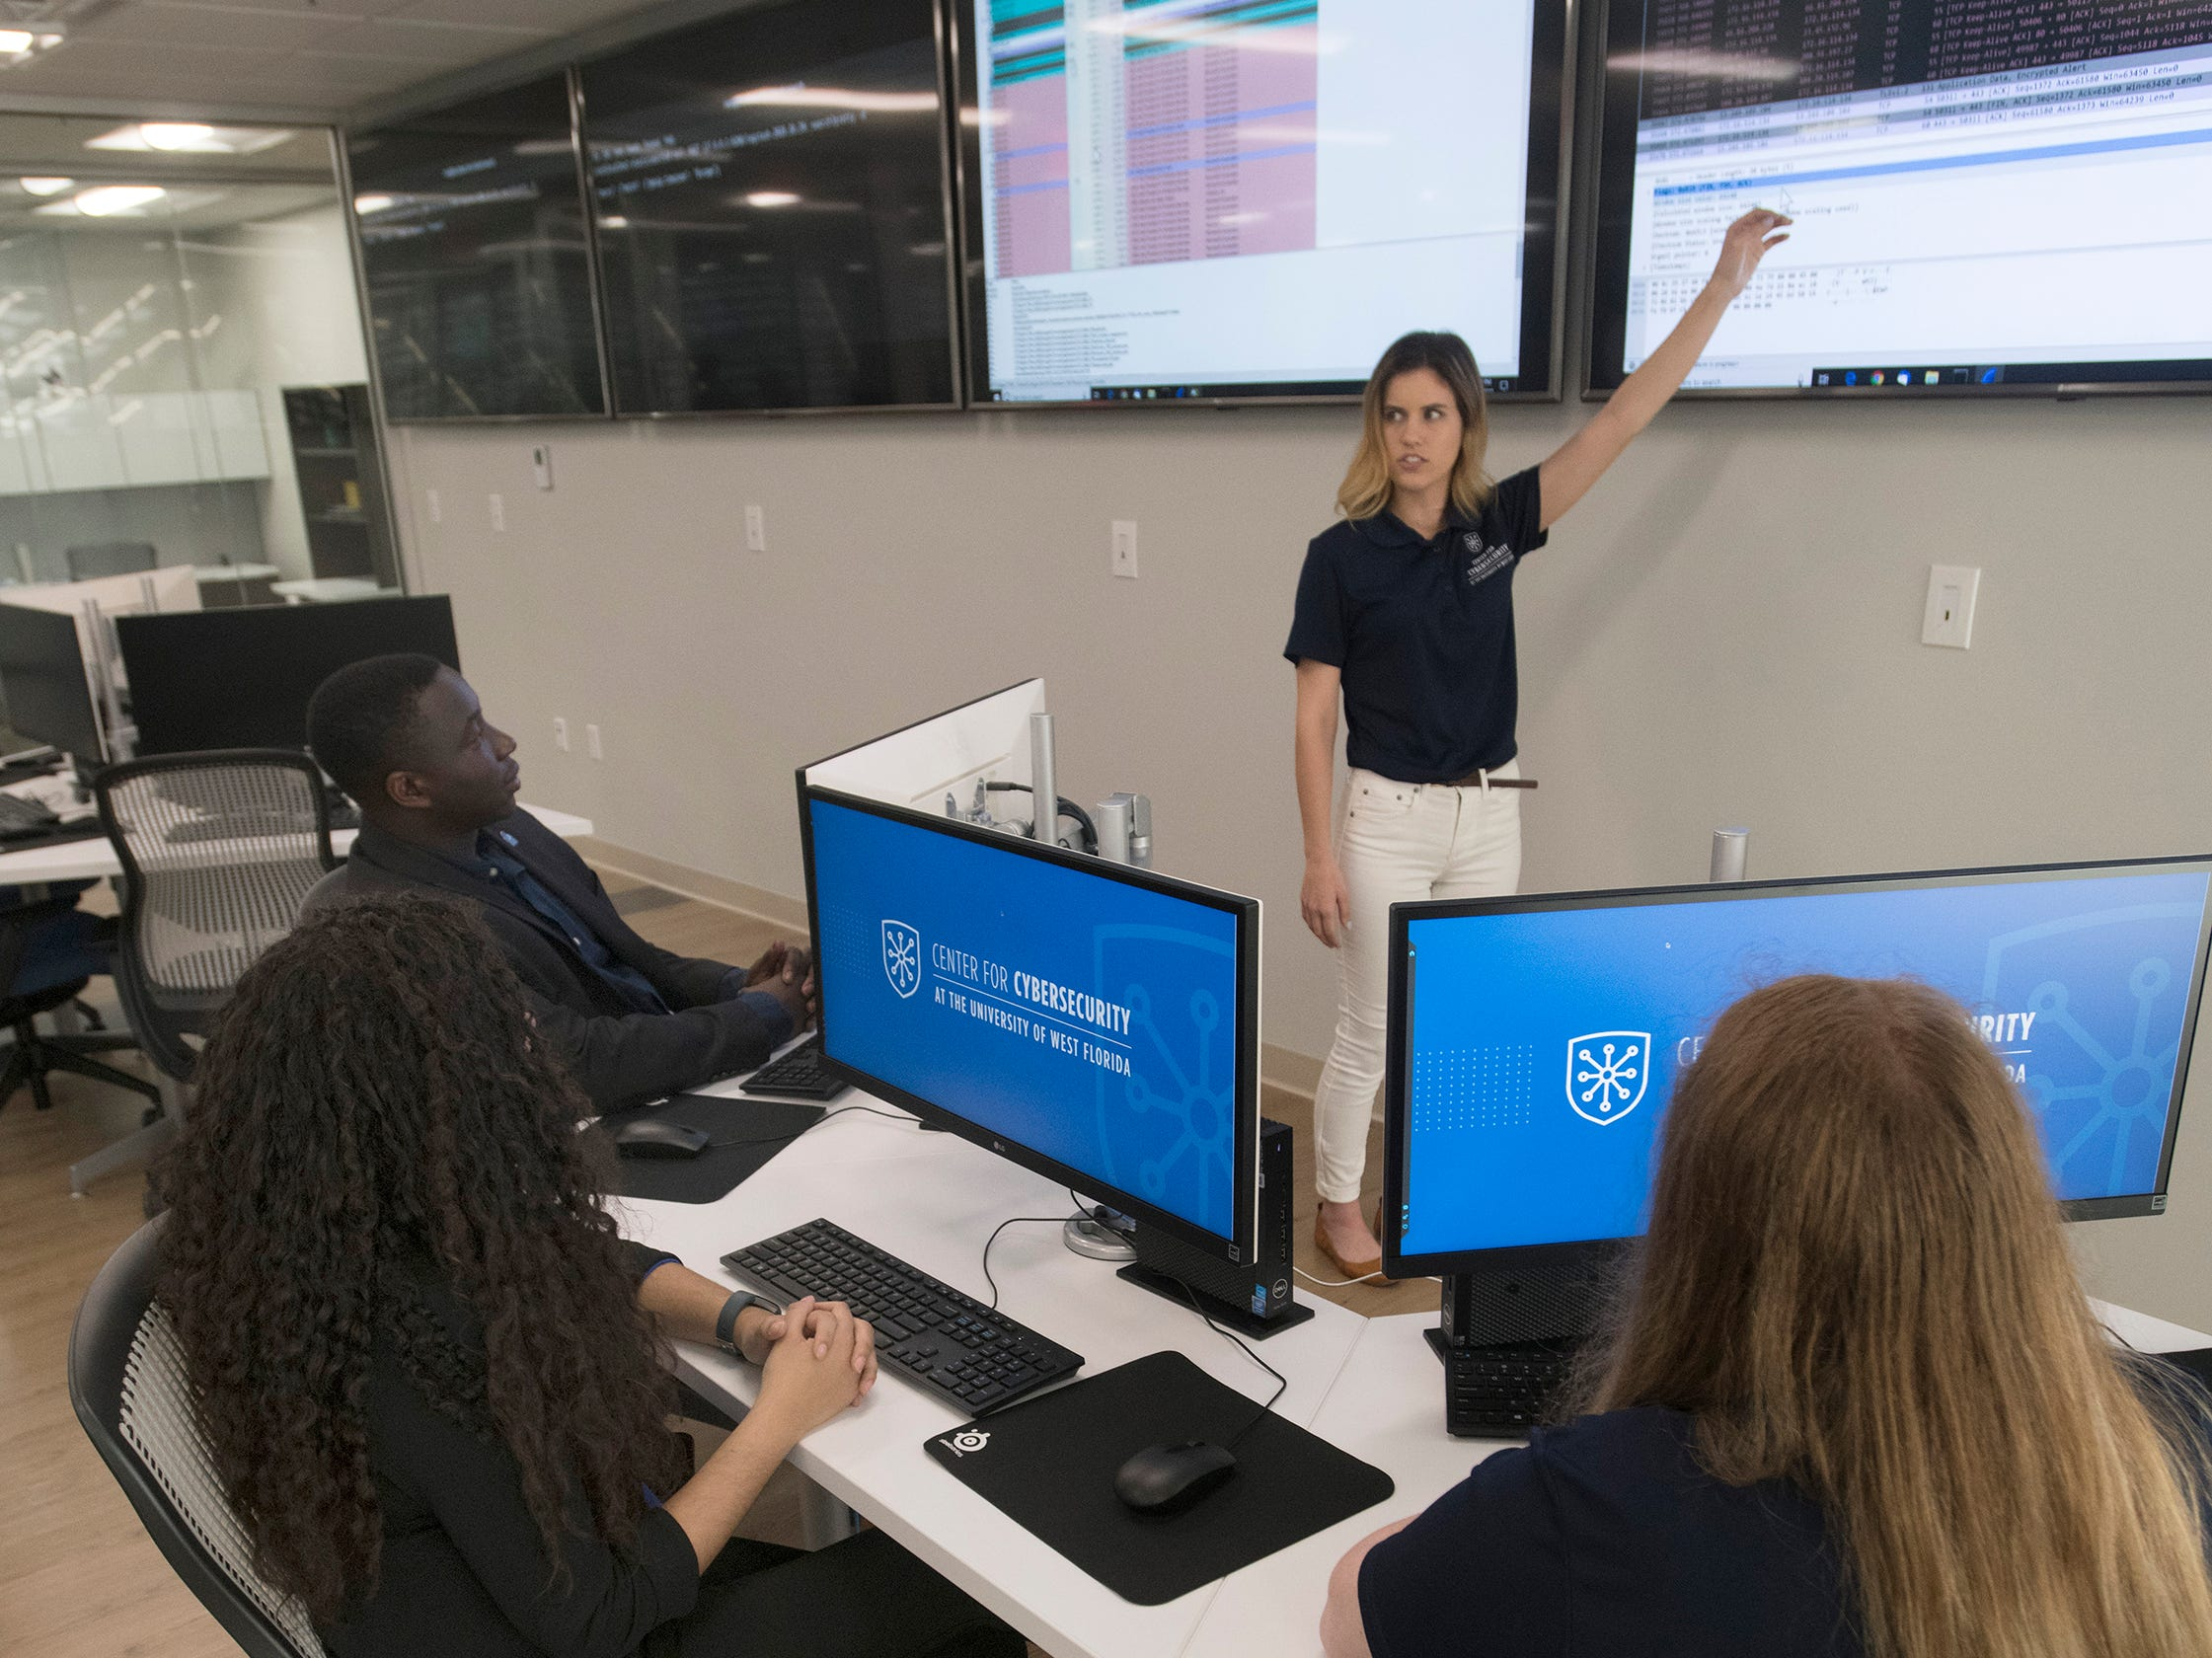 University of West Florida cybersecurity ambassadors begin working out of the new Center for Cybersecurity in downtown Pensacola on Friday, April 12, 2019.  Located in the Studer Community Institute building the new UWF center will increase the university's presence in downtown Pensacola.